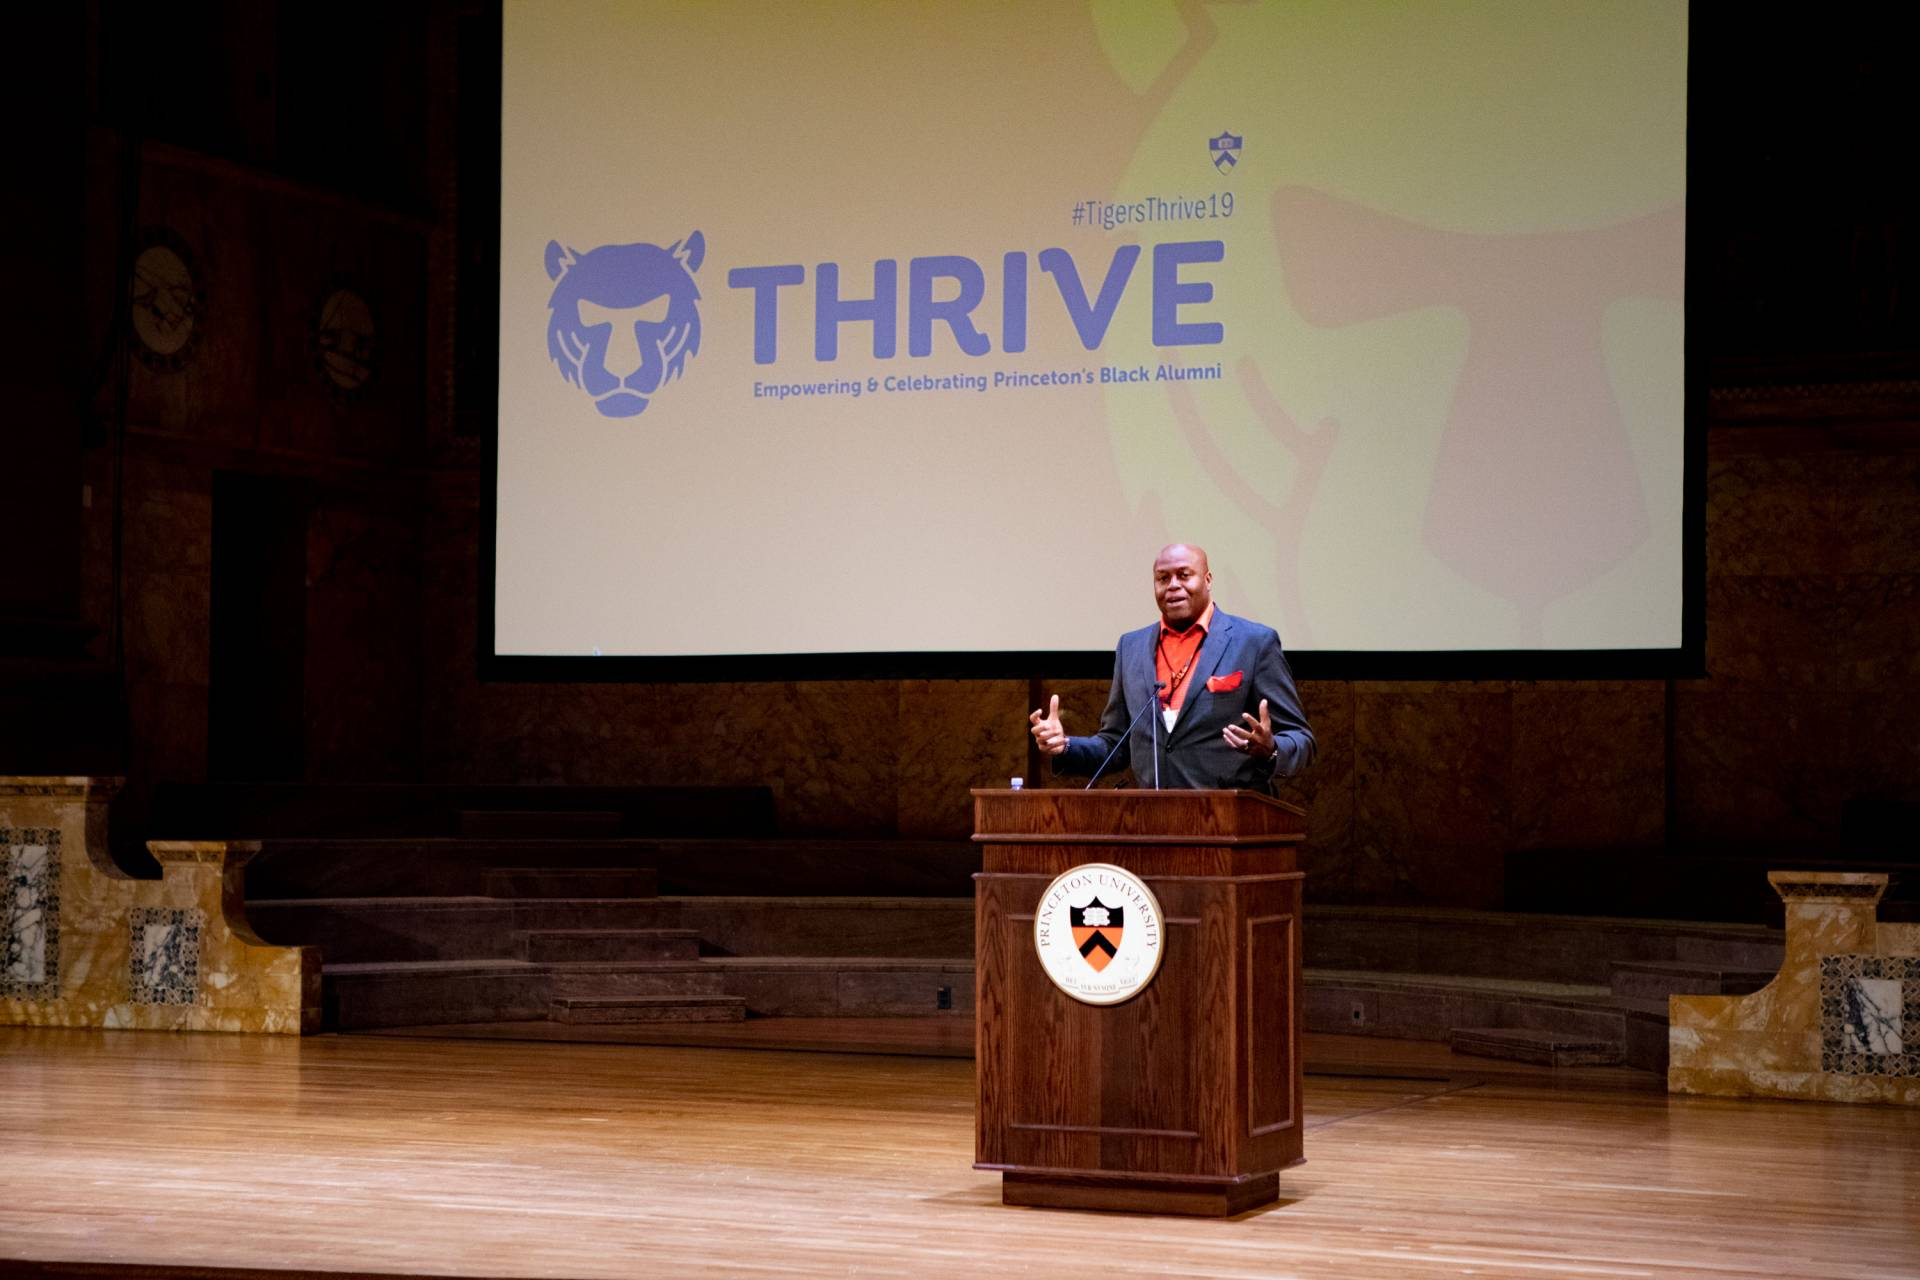 Craig Robinson speaking at podium in front of screen with the word THRIVE on it